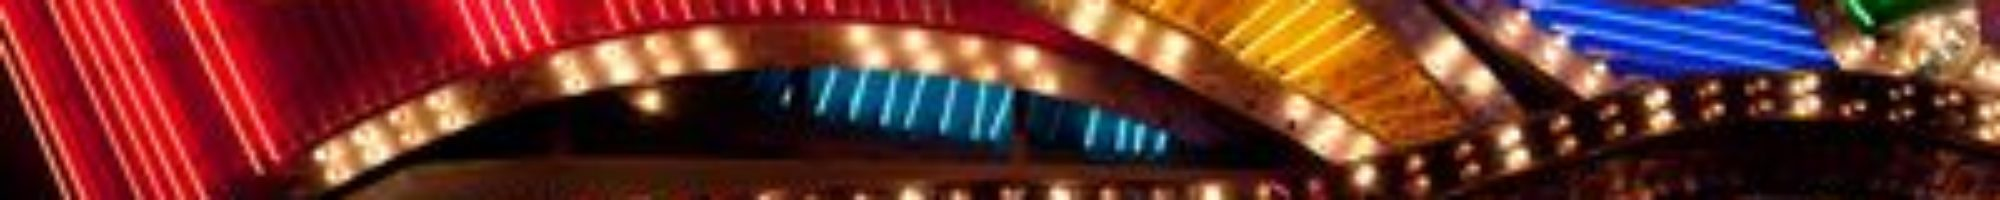 cropped-casino-sign-1.jpg